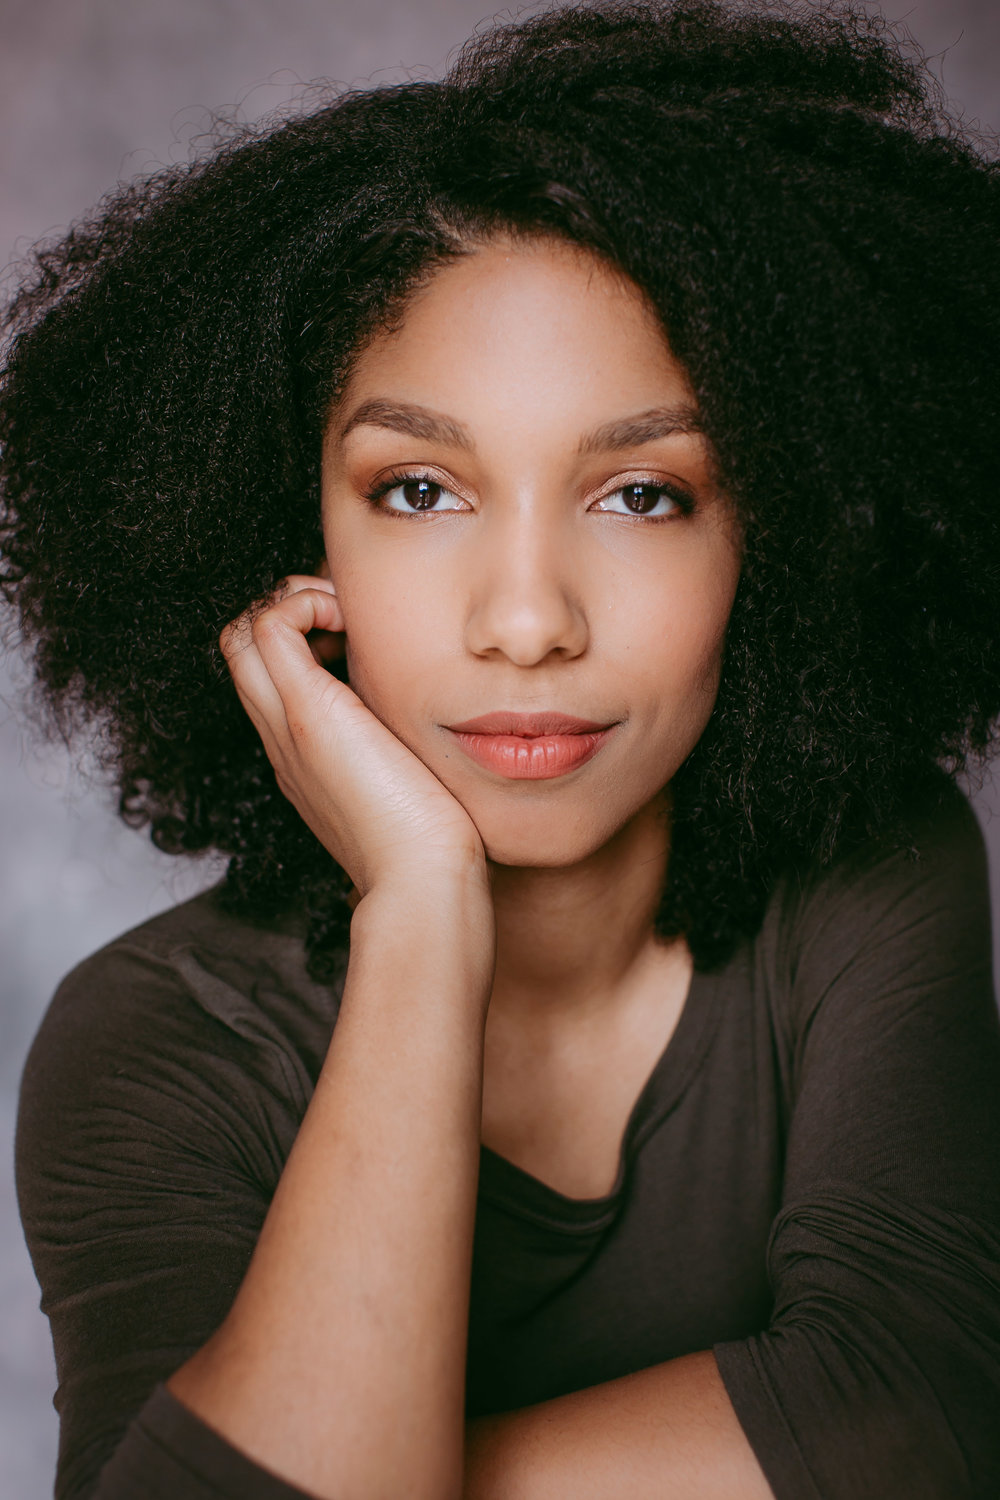 "Raylene Harewood - PublicistRaylene Harewood is an emerging actor and theatre artist based in Vancouver, BC. She was born and raised in Winnipeg, Manitoba where she first developed her love of theatre. At the age of 19 she moved out to the west coast to study acting at Studio 58. Since graduation, she has been working as an actor in theatre, film and television. Select theatre credits include ""Irving"" in Three Winters (Amiel Gladstone/The Cultch), ""Anna"" in The Hunger Room (Staircase Theatre), ""Cressida"" in Troilus and Cressida, ""Hannah Pitt"" in Angels in America PART ONE: Millennium Approaches, ""Jill"" in The Crowd (Studio 58), ""Lydia Bennet"" in Pride and Prejudice (The Arts Club Theatre Company), ""Gilberta"" in Hairspray (Theatre Under the Stars). Raylene has also played roles on television shows including The Magicians, Supernatural, iZombie, Lucifer and Reverie. Raylene is thrilled to be on board with Sticks and Stones Theatre in her first credit as a publicist!"